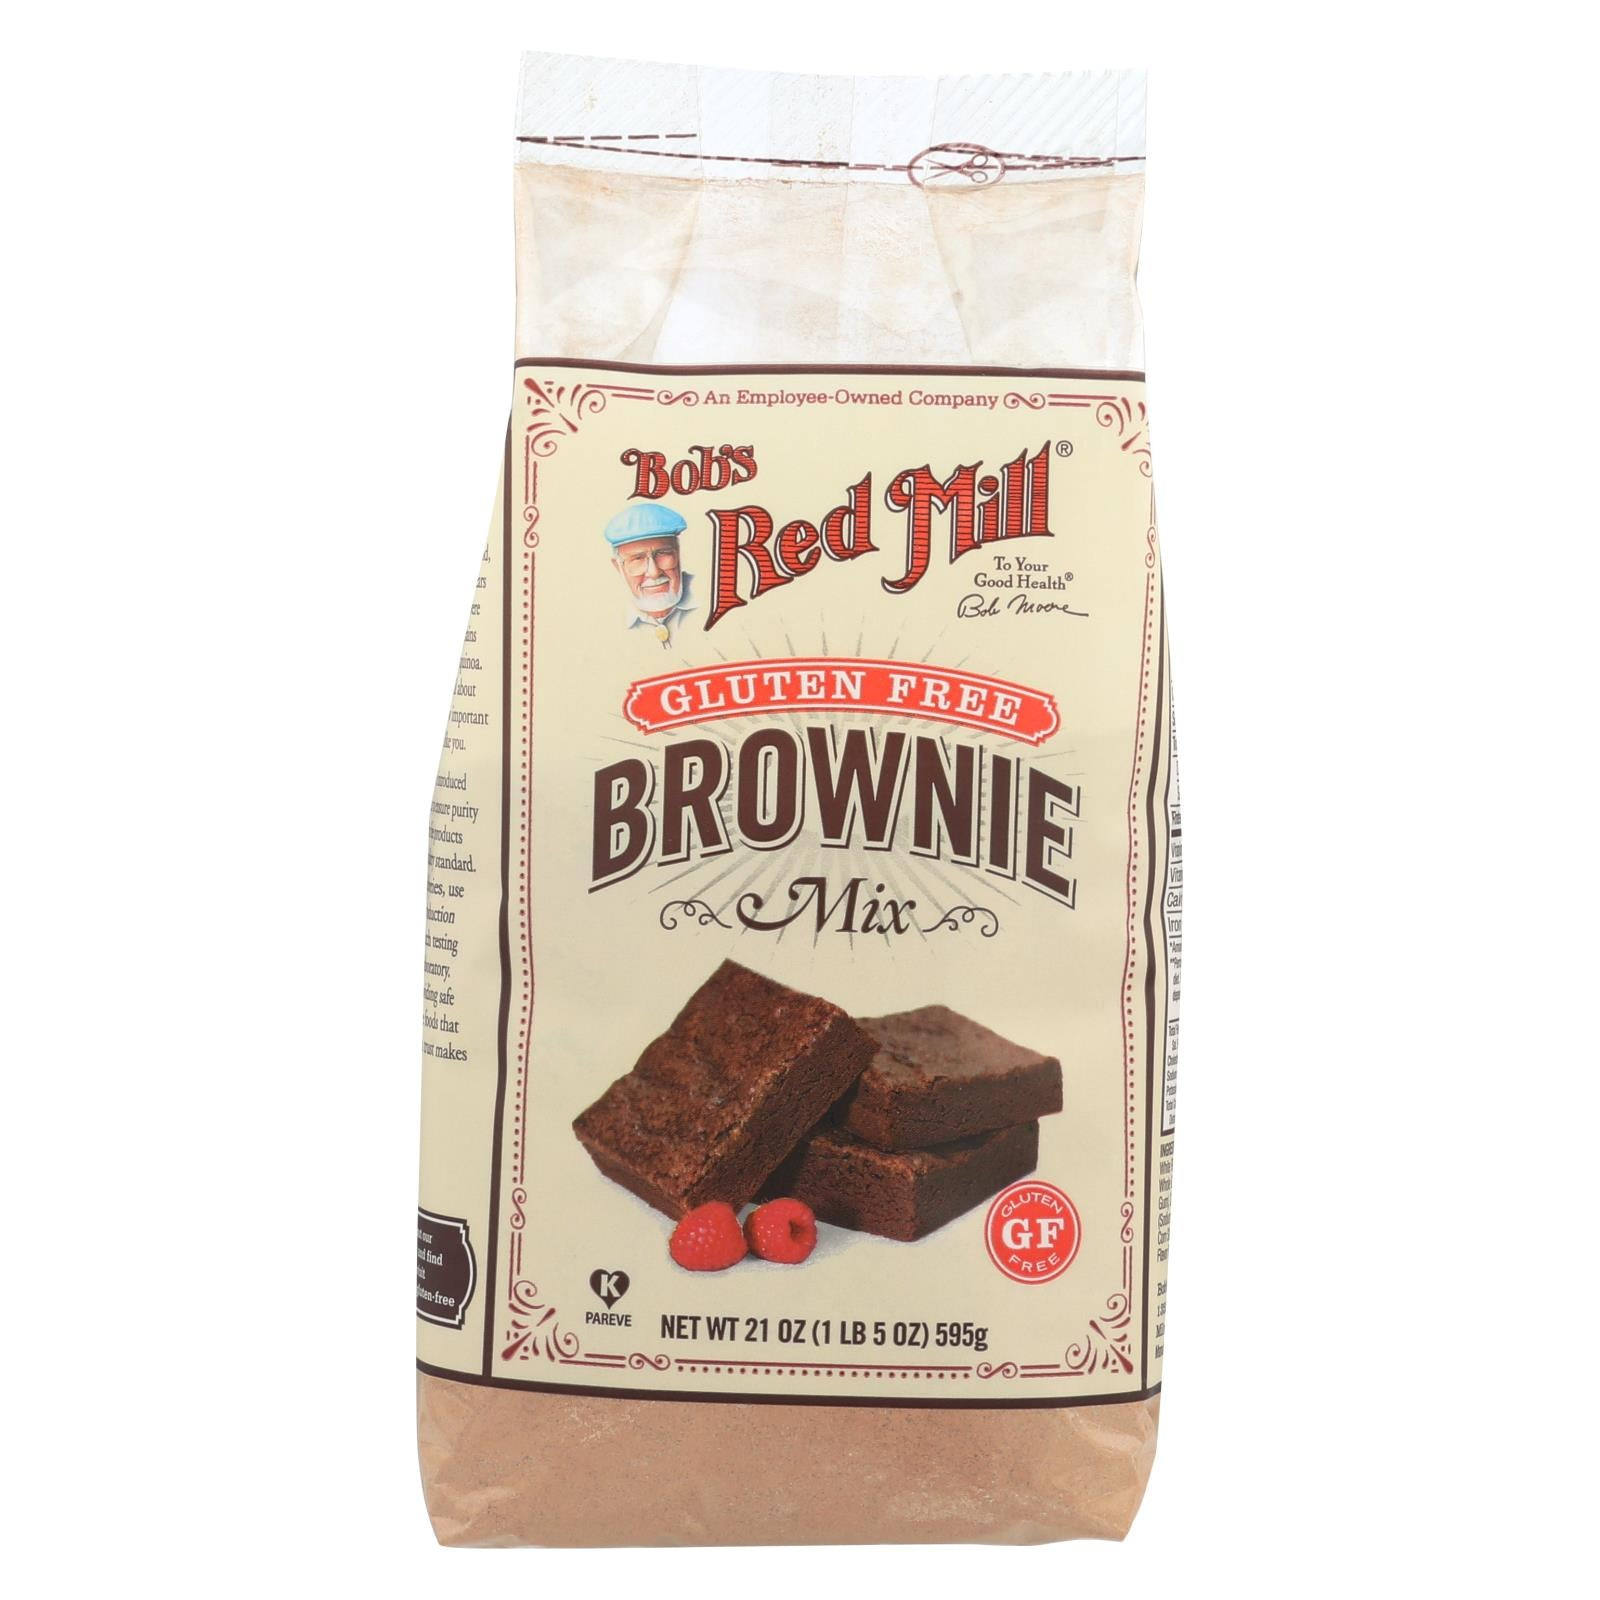 Bob's Red Mill Gluten Free Brownie Mix - 21 Oz - Case Of 4 HG0315259